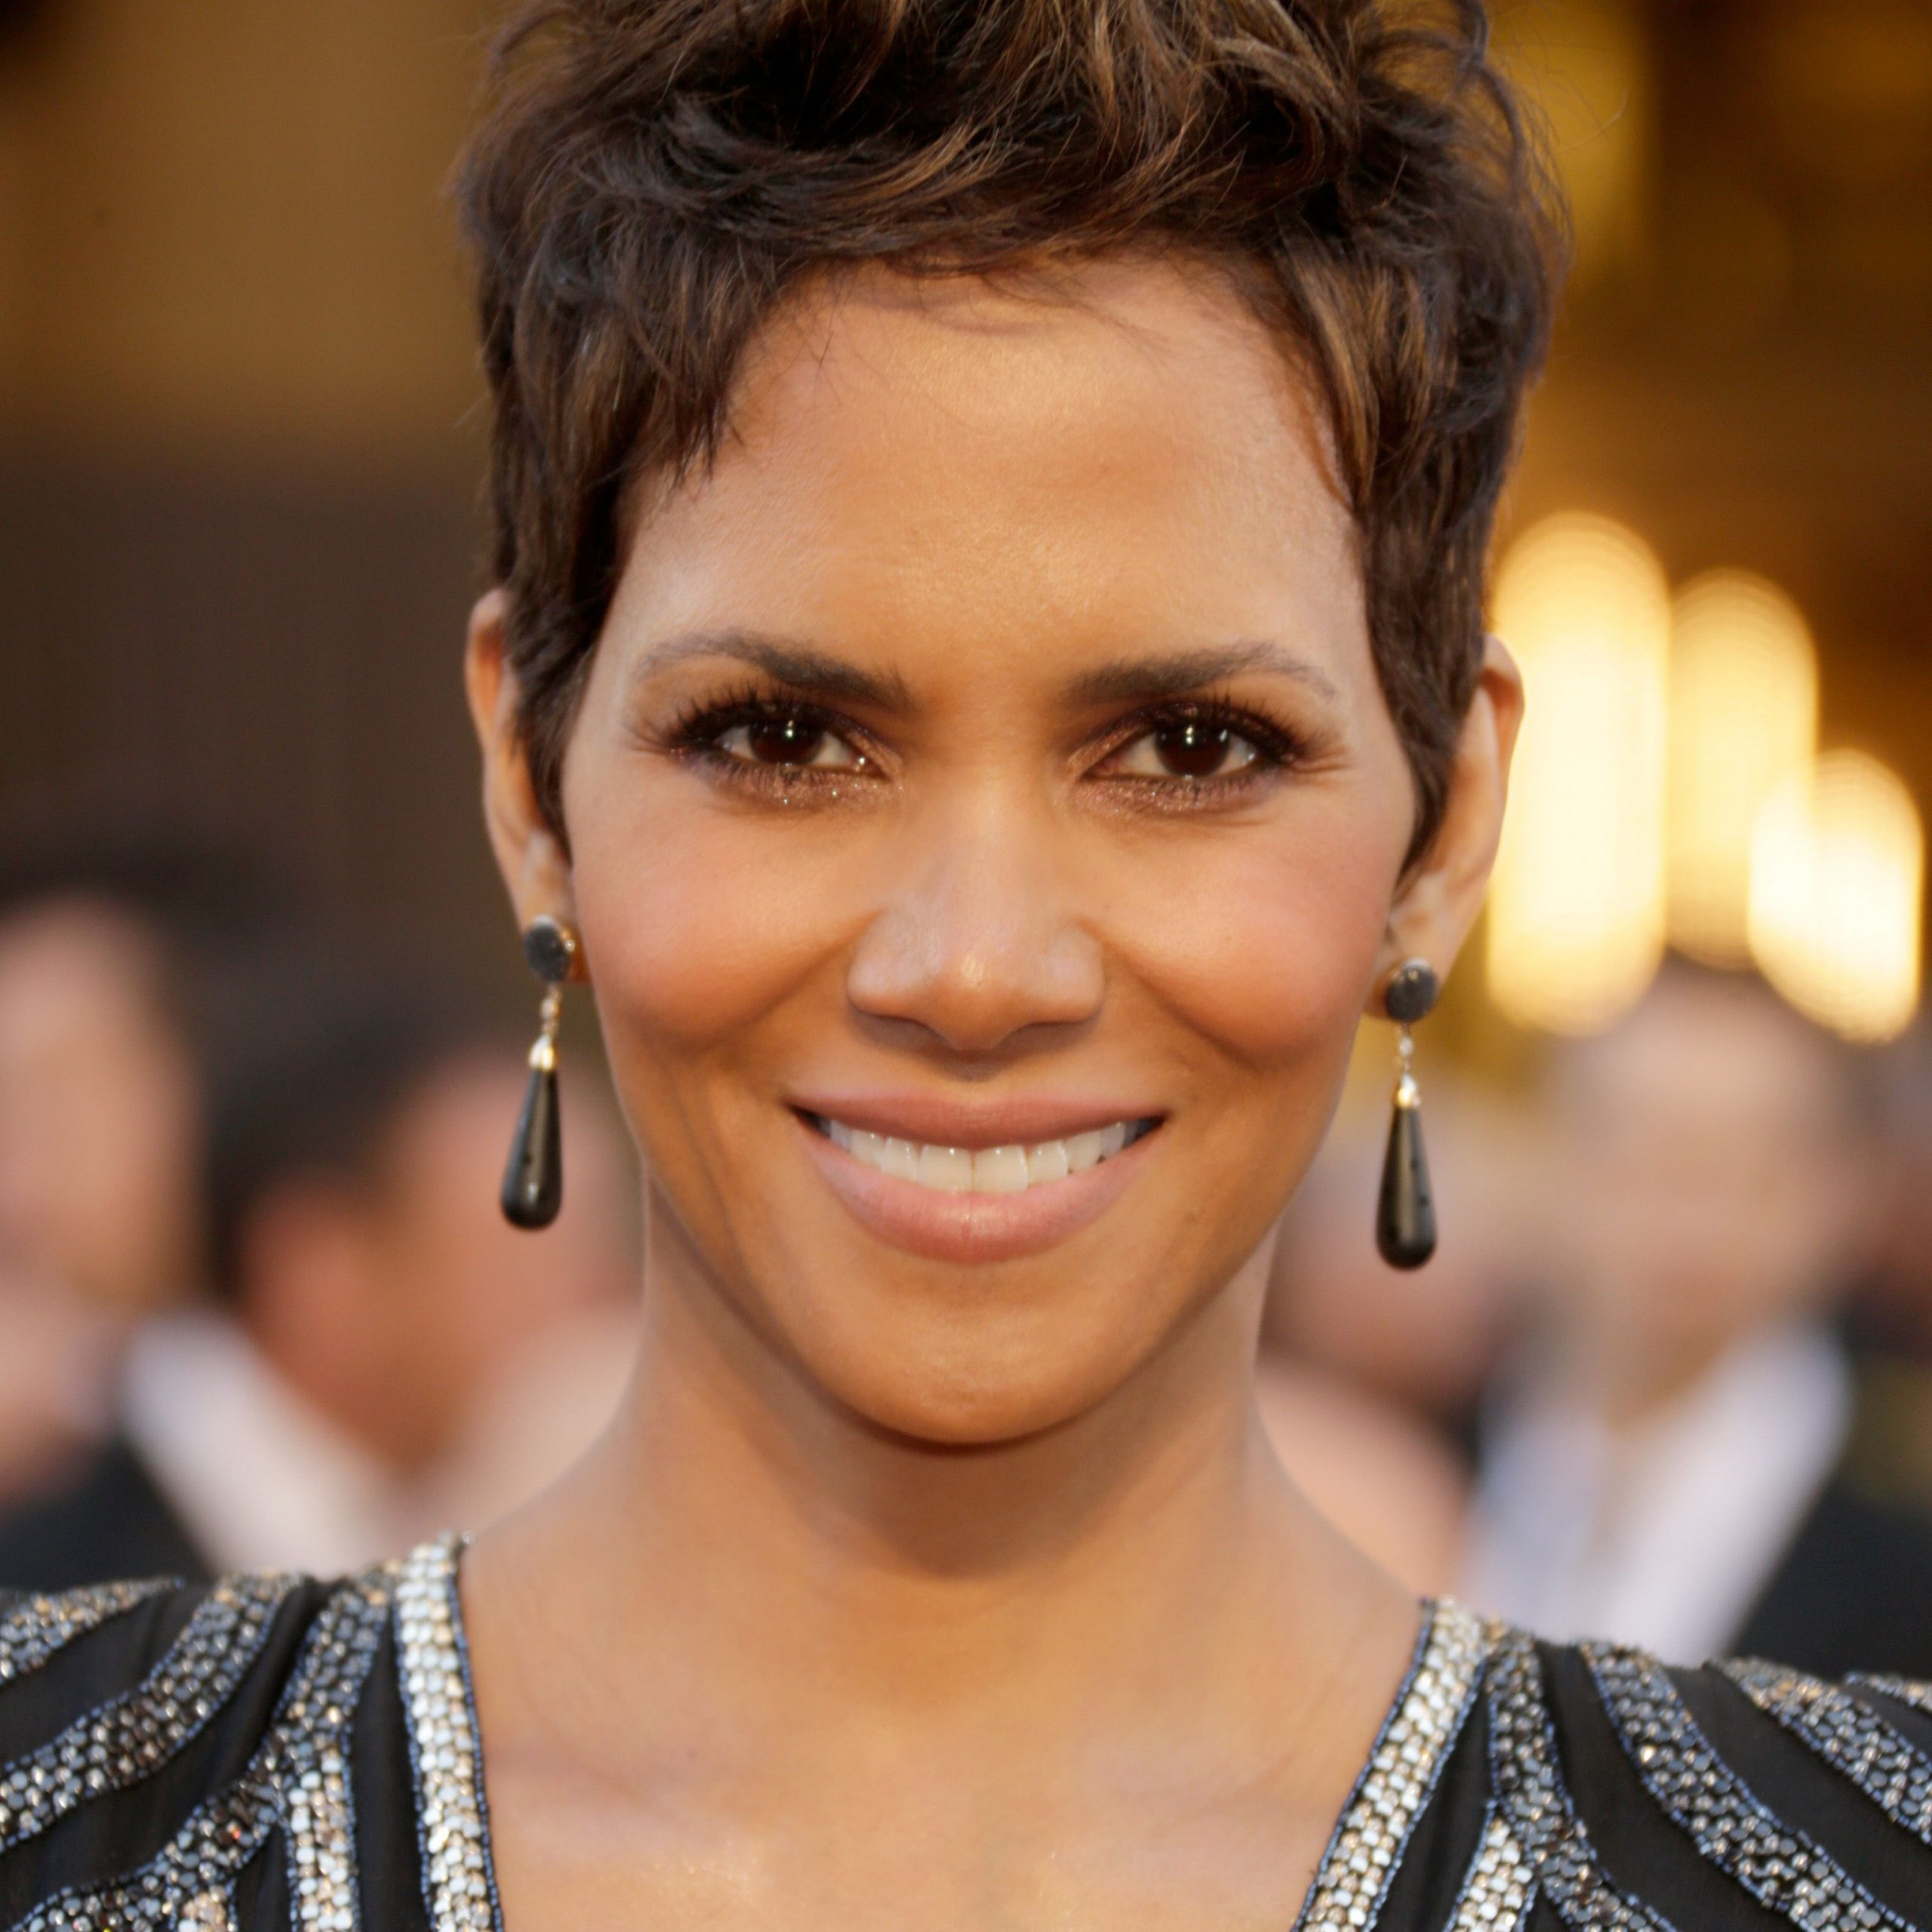 20 Classic And Cool Short Hairstyles For Older Women Intended For Cropped Pixie Haircuts For A Round Face (View 1 of 20)